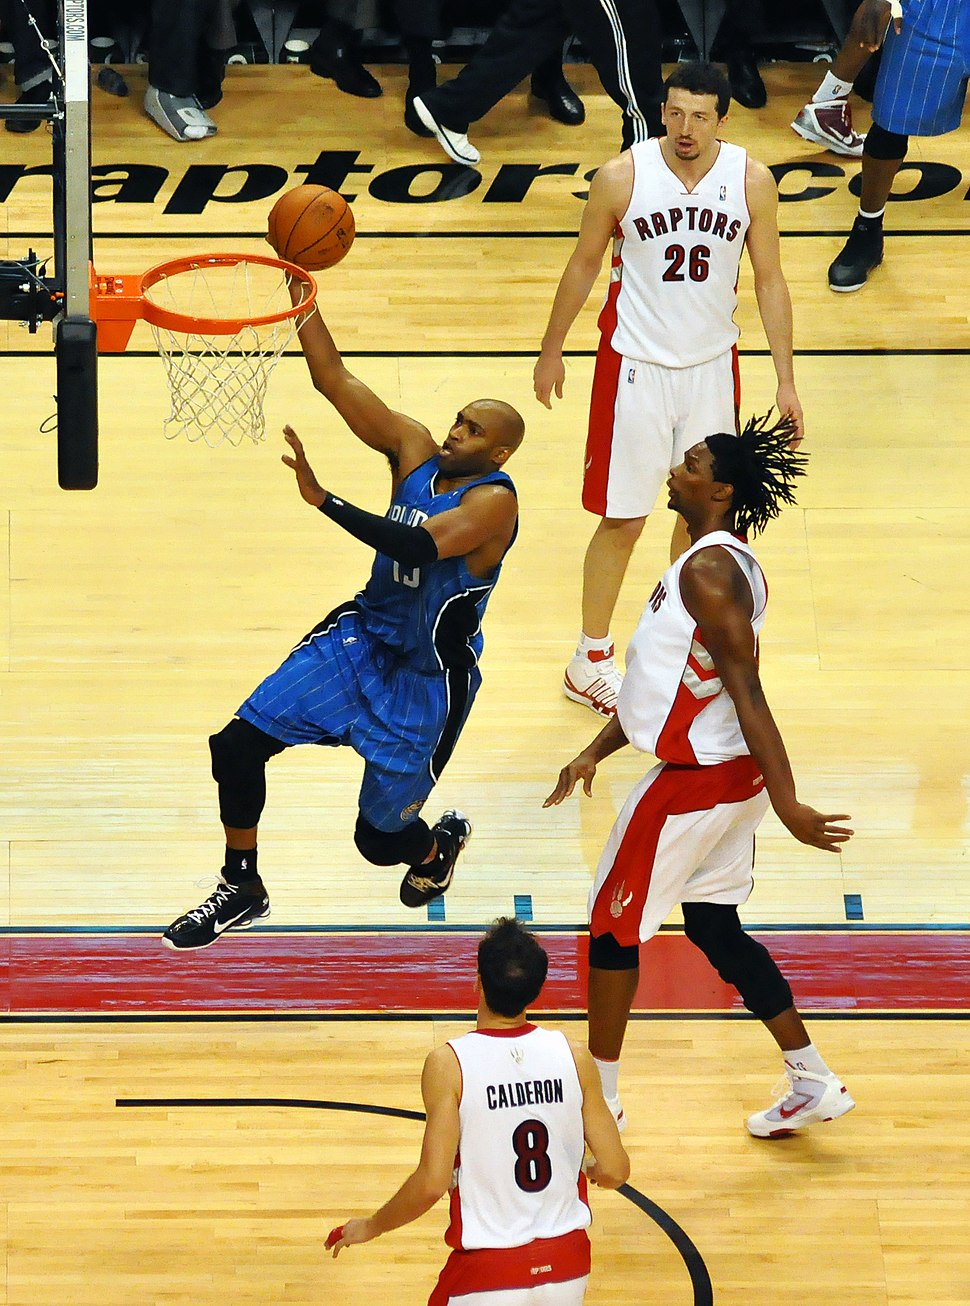 Vince carter magic v raptors